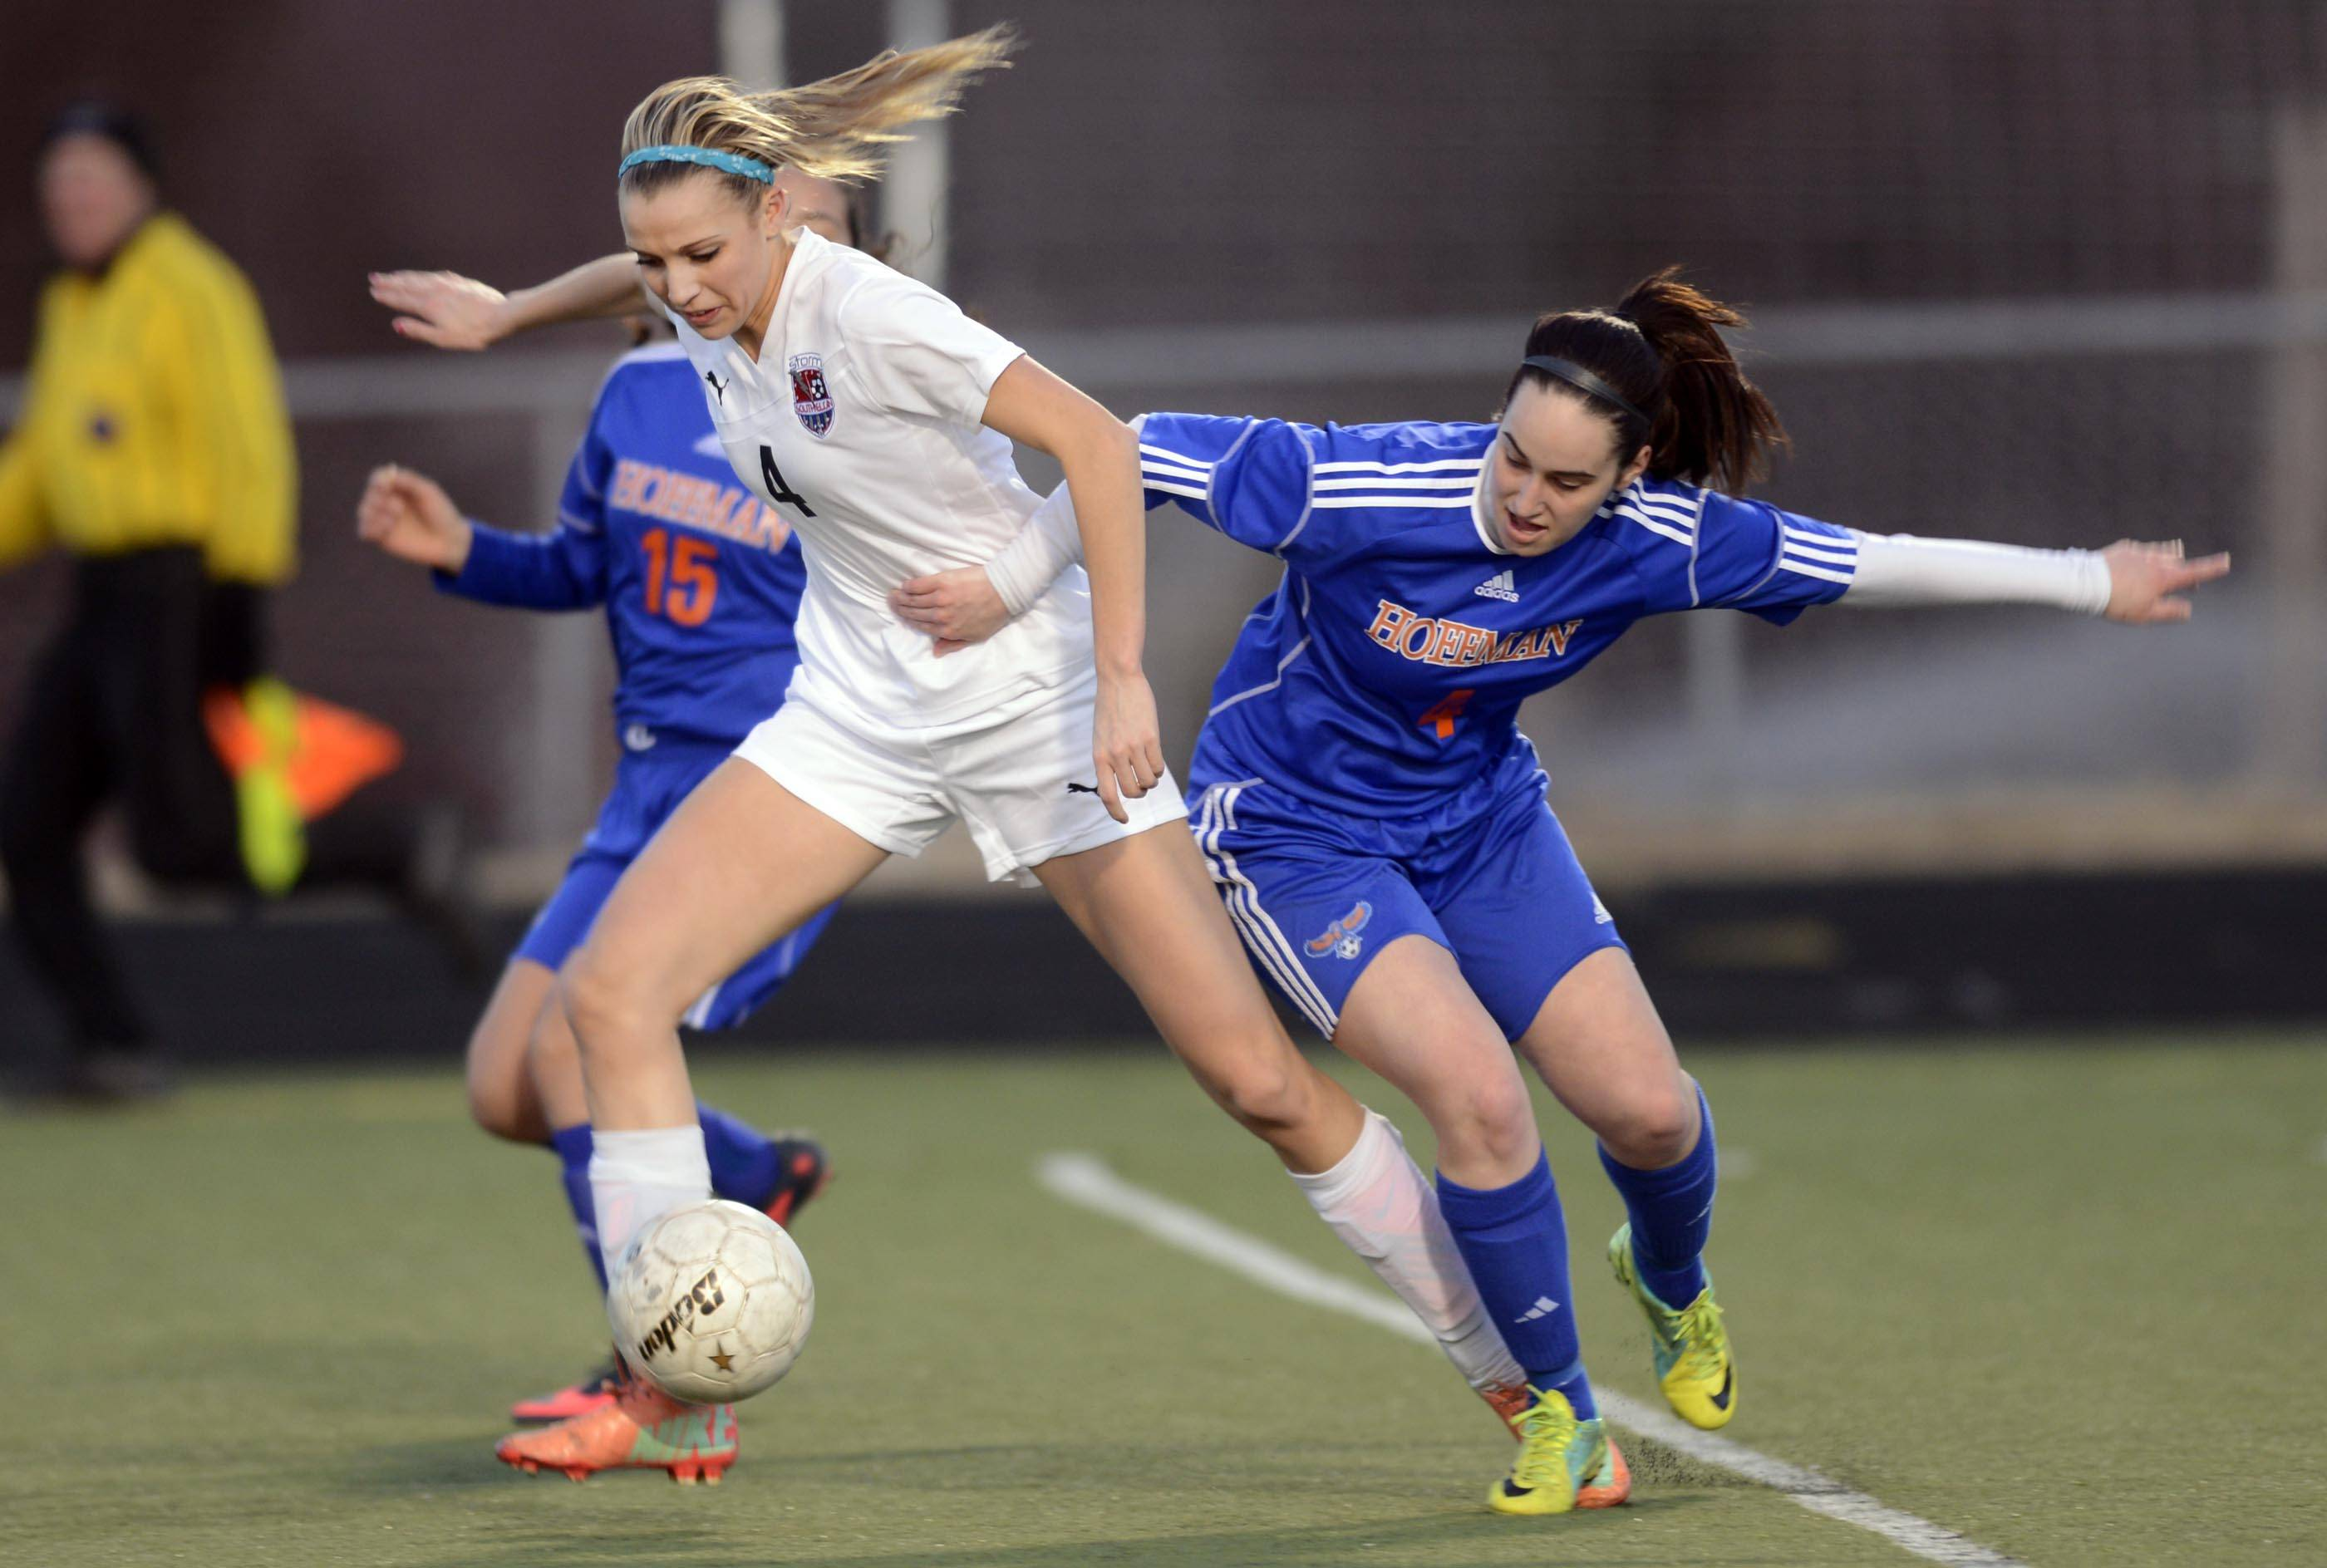 Hoffman Estates' Hannah Brostoff tries to slow down South Elgin's Savanah Uveges Thursday at Millennium Field in Streamwood. Uveges scored on the play.